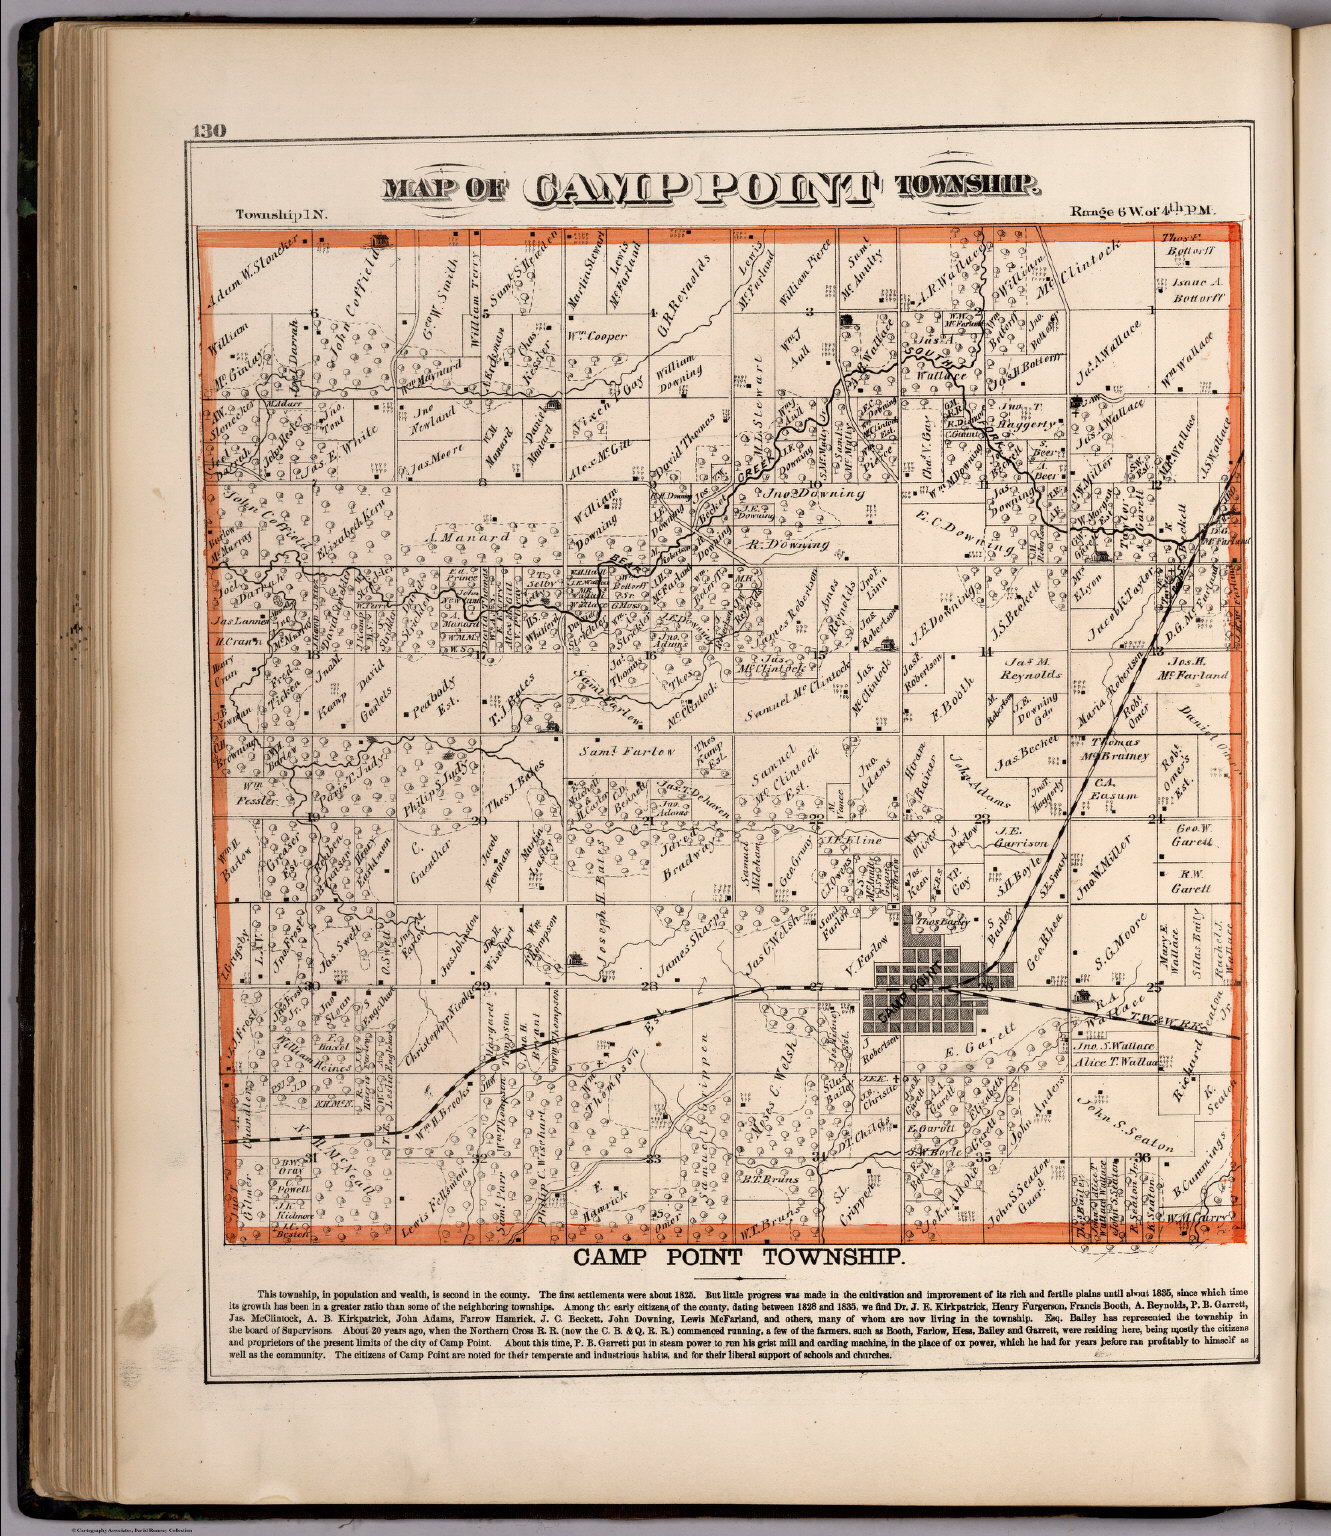 Camp Point Township, Adams County, Illinois.